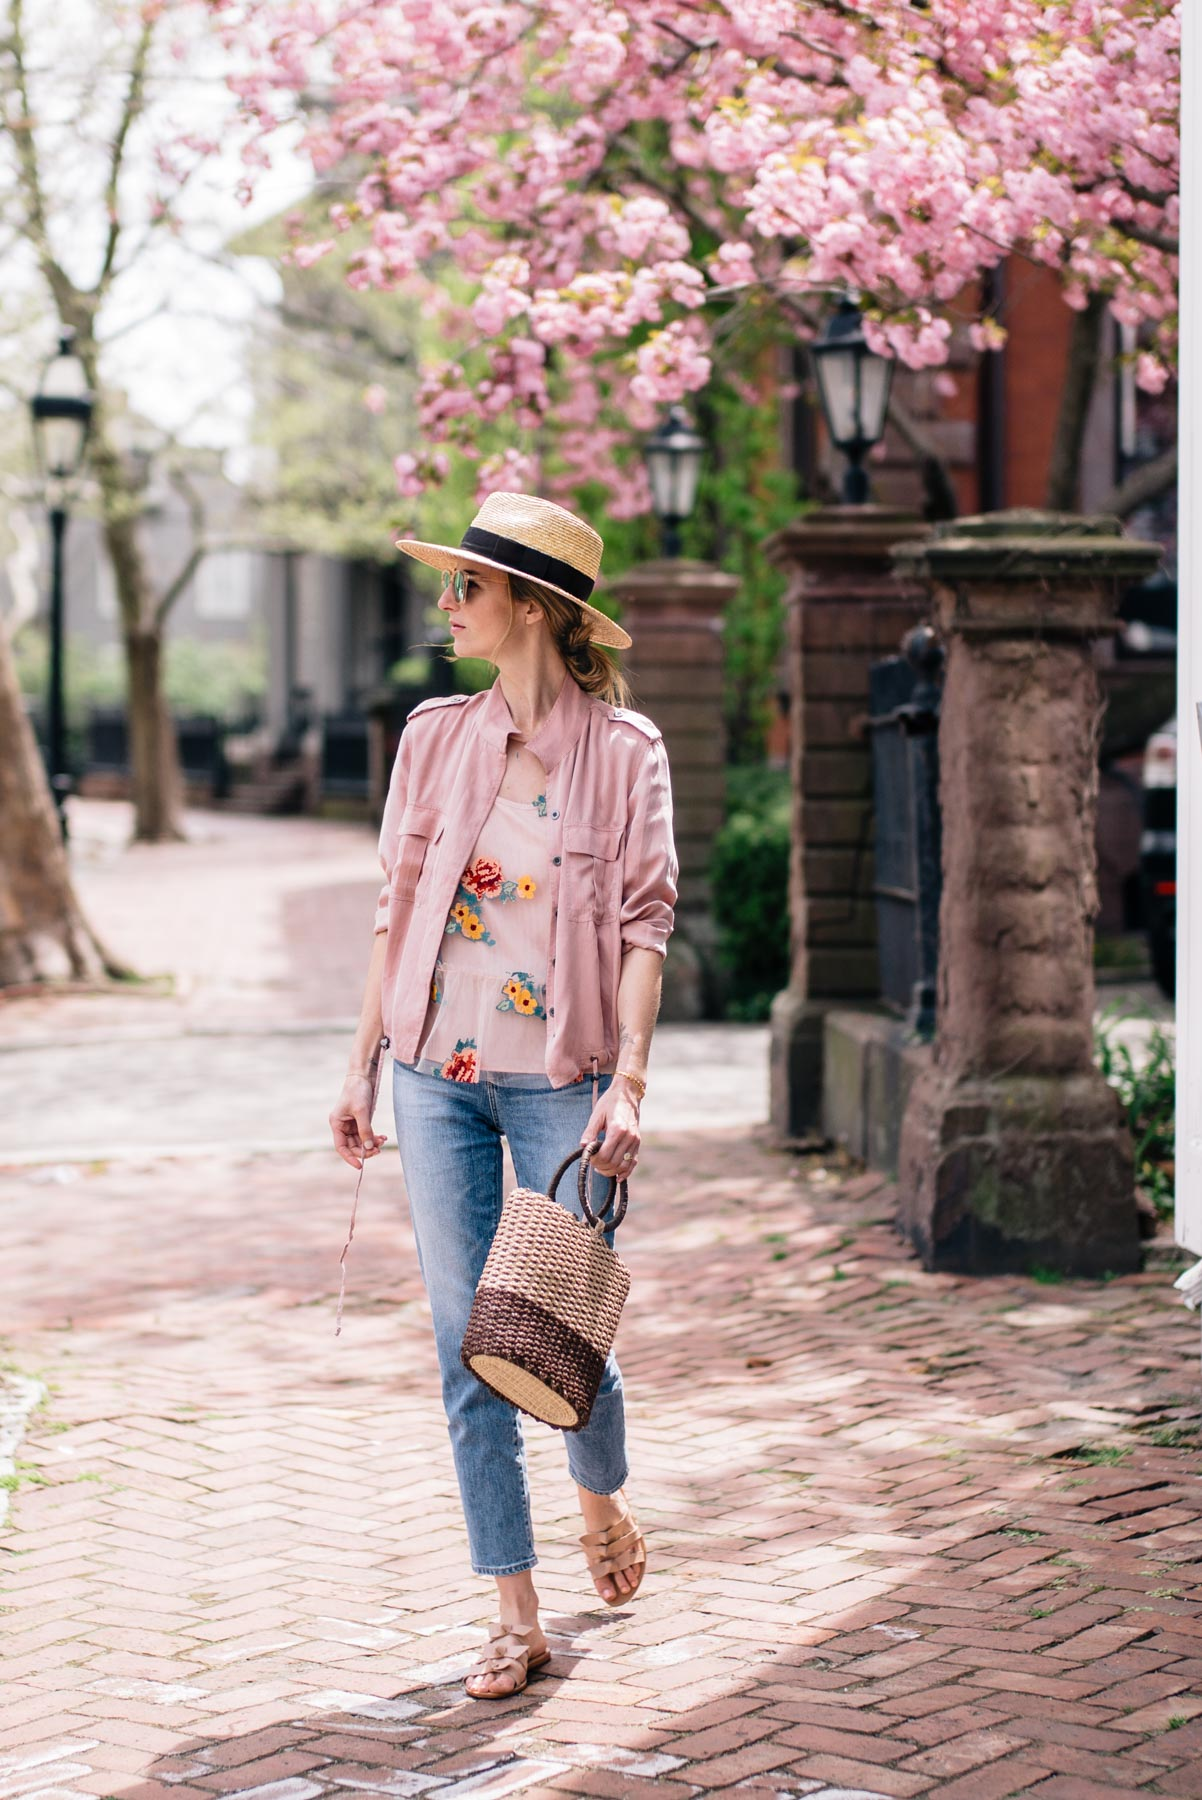 Jess Ann Kirby styles a spring look with straw accessories and high rise jeans in College Hill, Providence